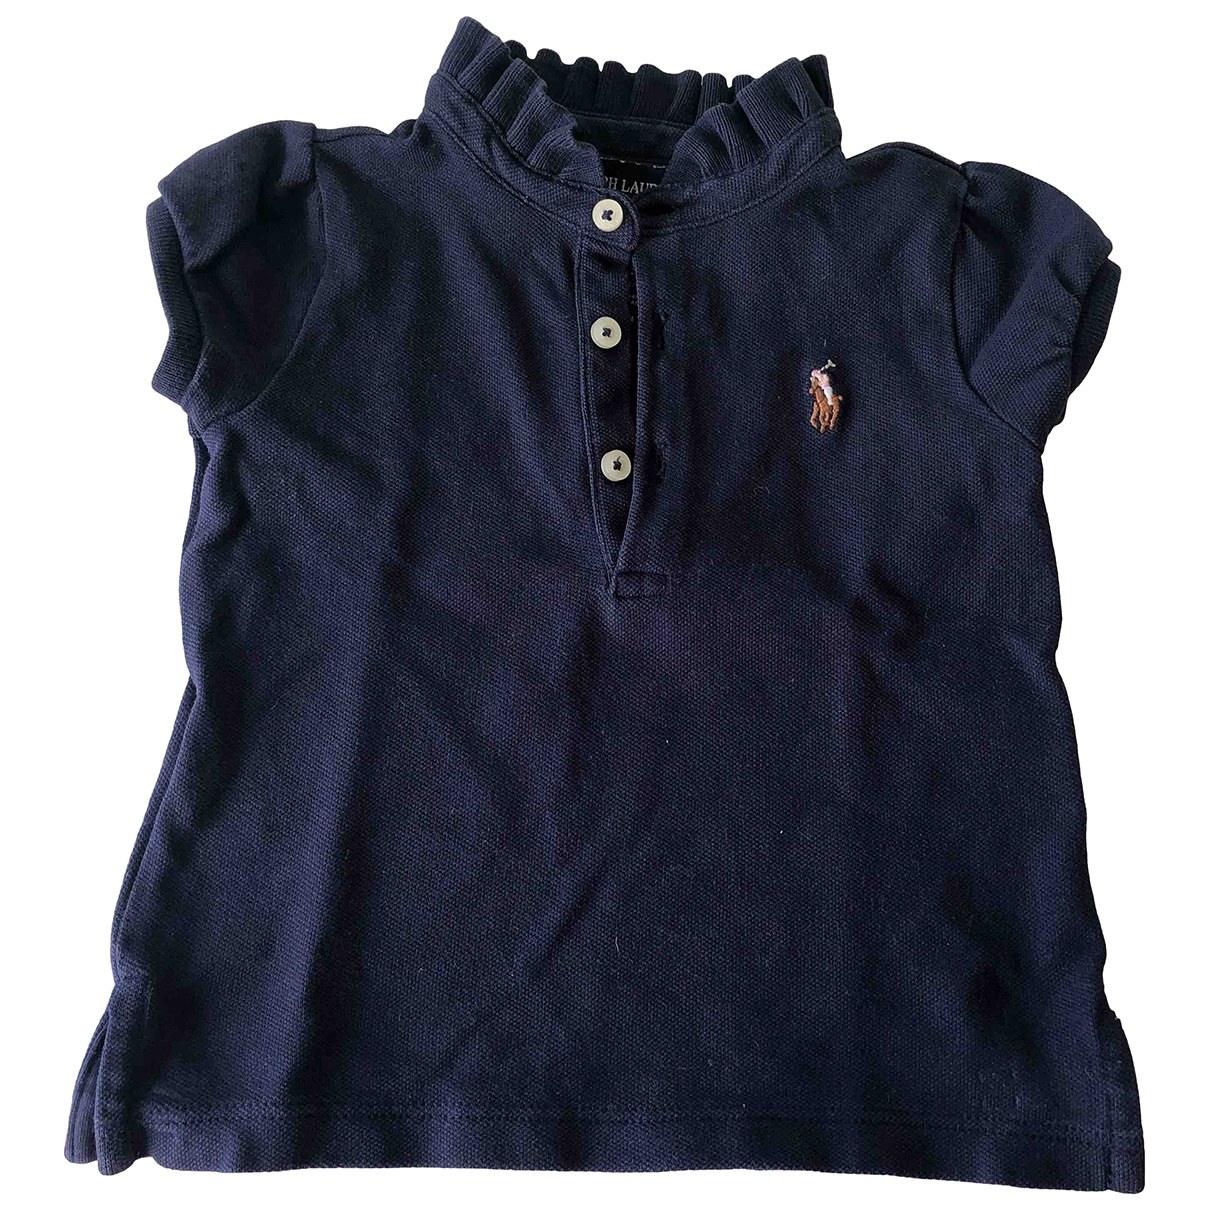 Ralph Lauren \N Blue Cotton  top for Kids 9 months - up to 71cm FR